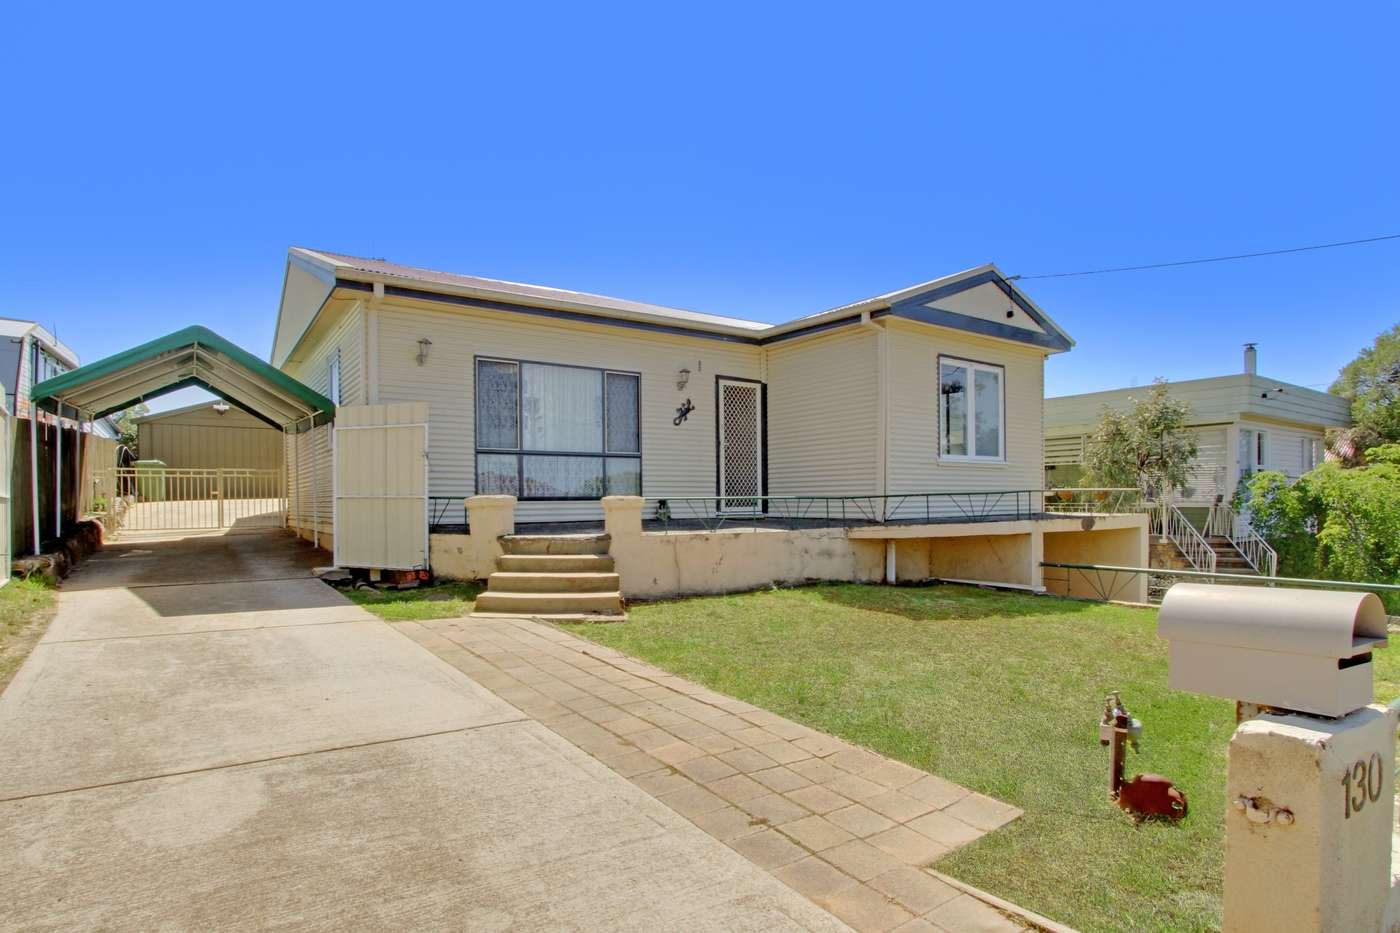 Main view of Homely house listing, 130 Collett St, Queanbeyan, NSW 2620